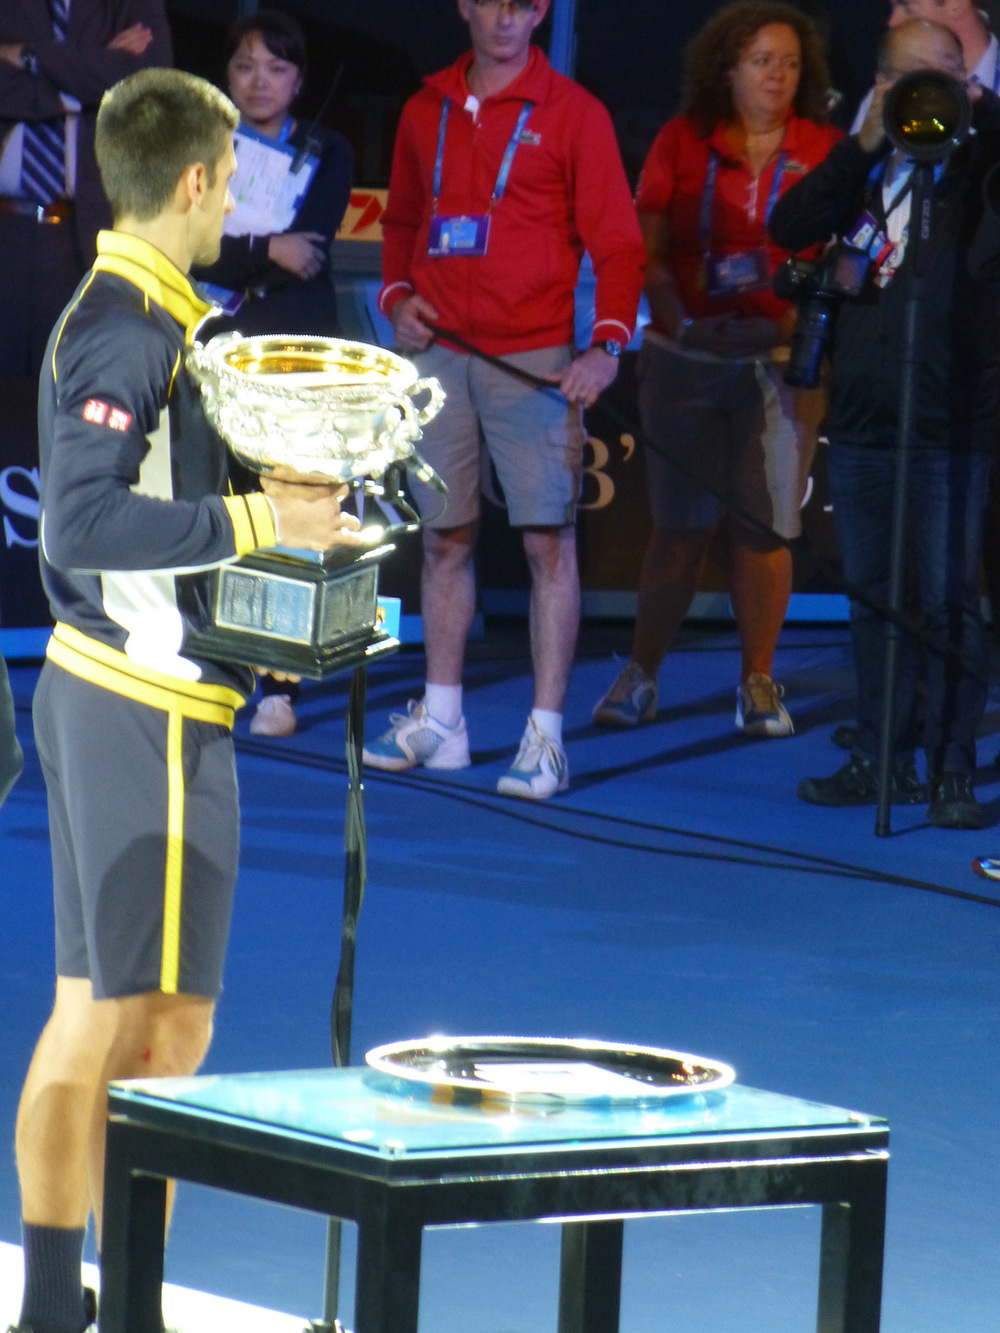 Novak with his trophy